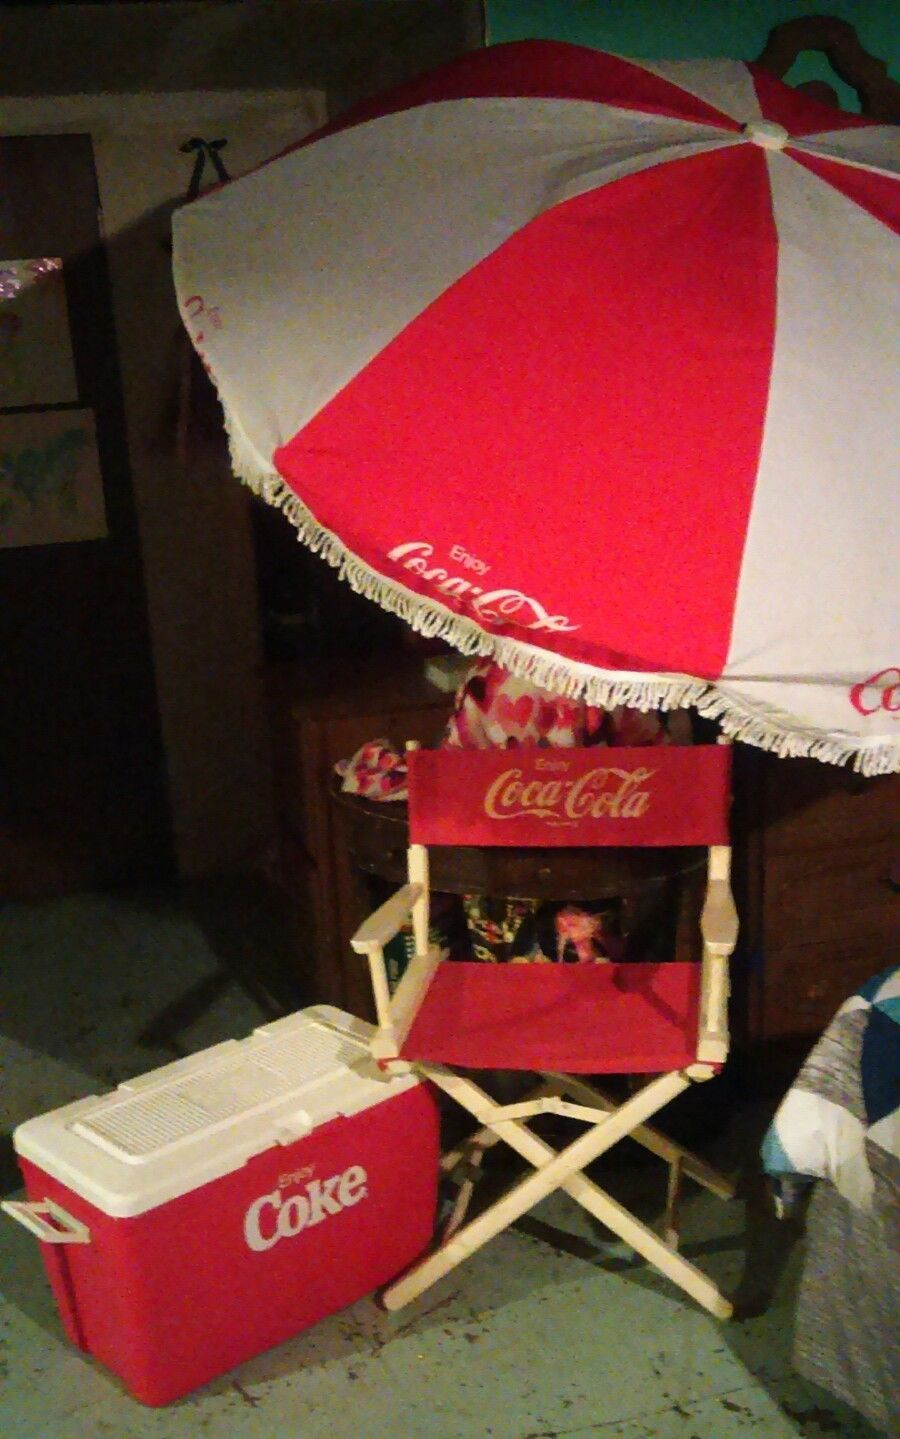 Coca Cola Patio Beach Umbrella 6 Panel 5 Ft Director Chair Igloo Cooler